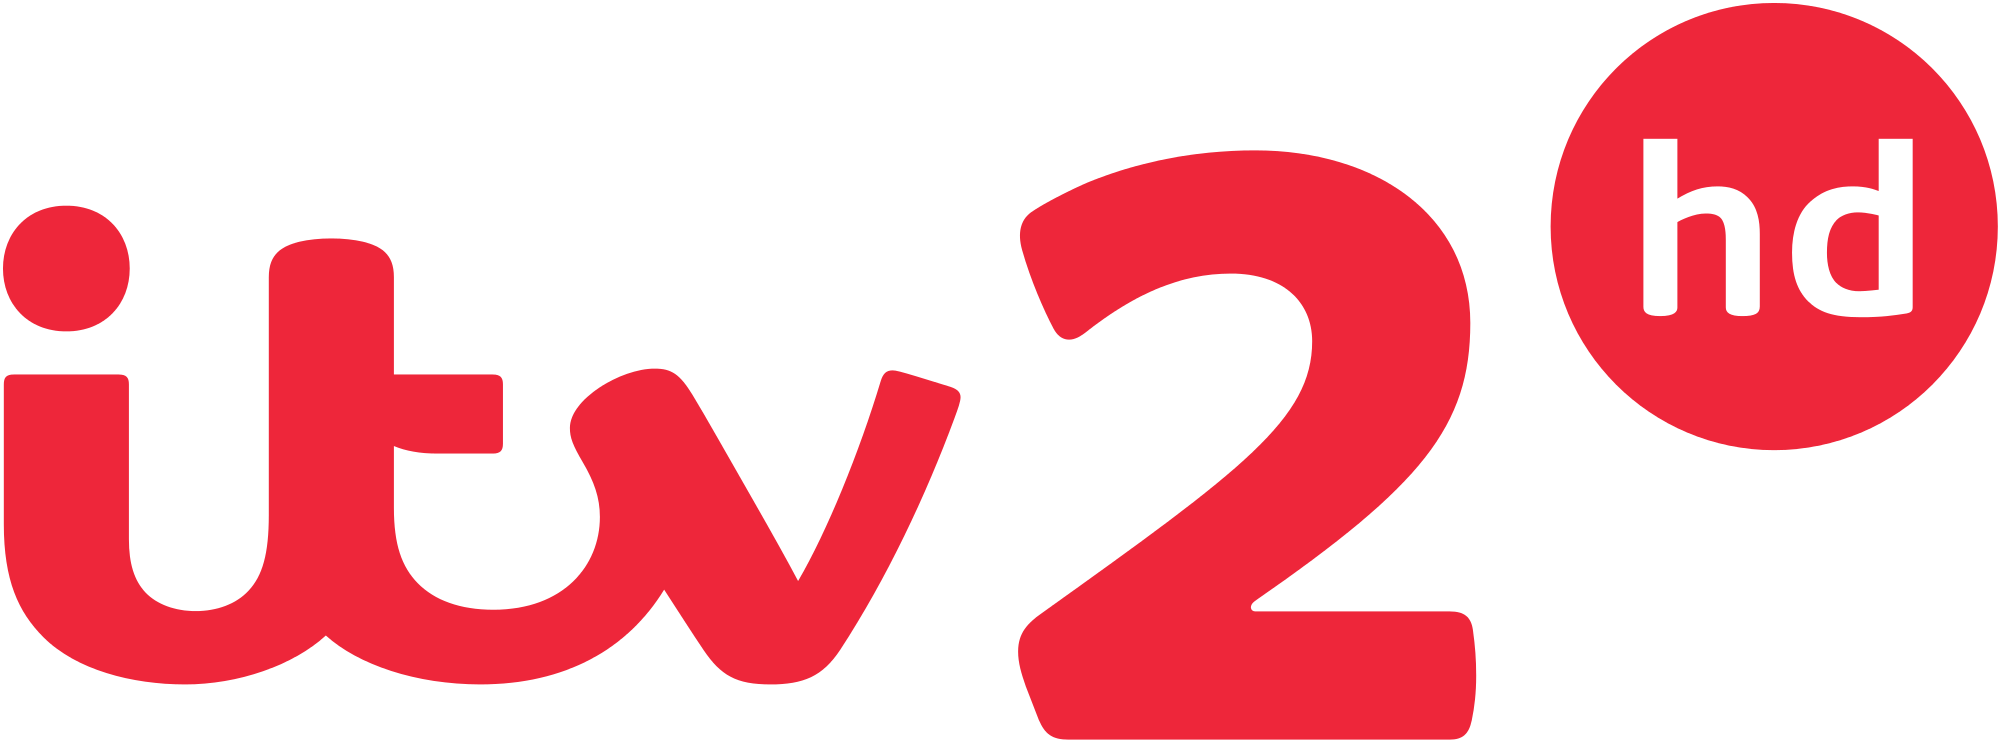 ITV2 HD logo 2013 svg.png - Itv2 Hd PNG